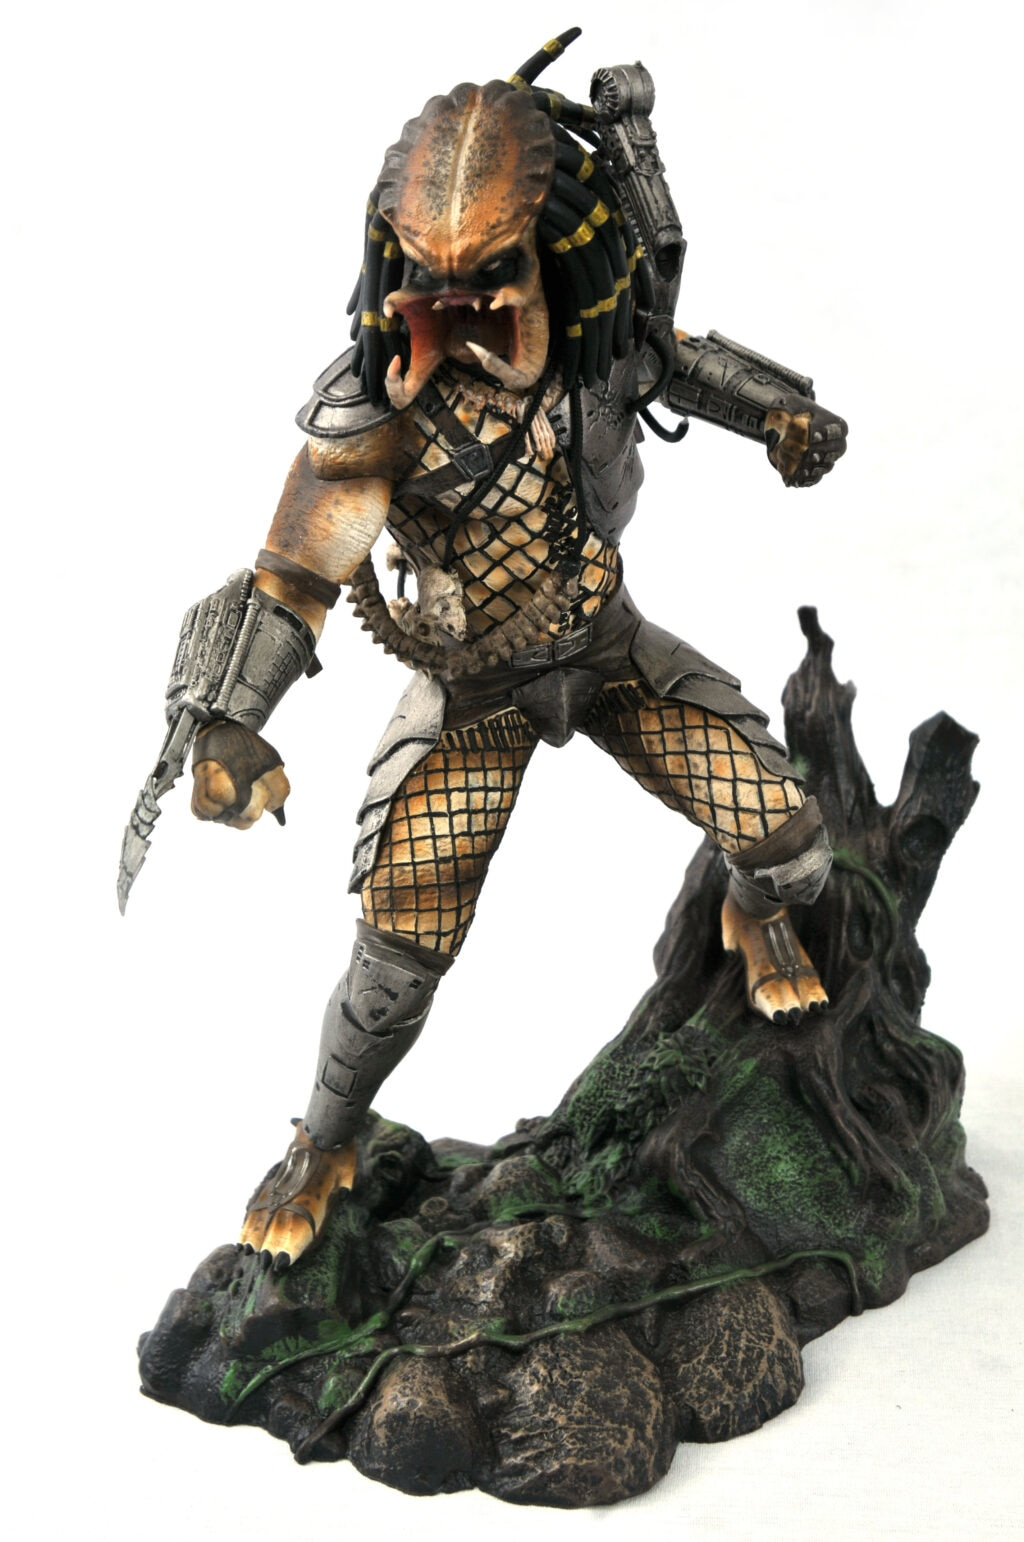 RGB 1551 1024x1542 - PREDATOR Unmasked: Diamond Select Toys Reveal Another SDCC 2020 Exclusive